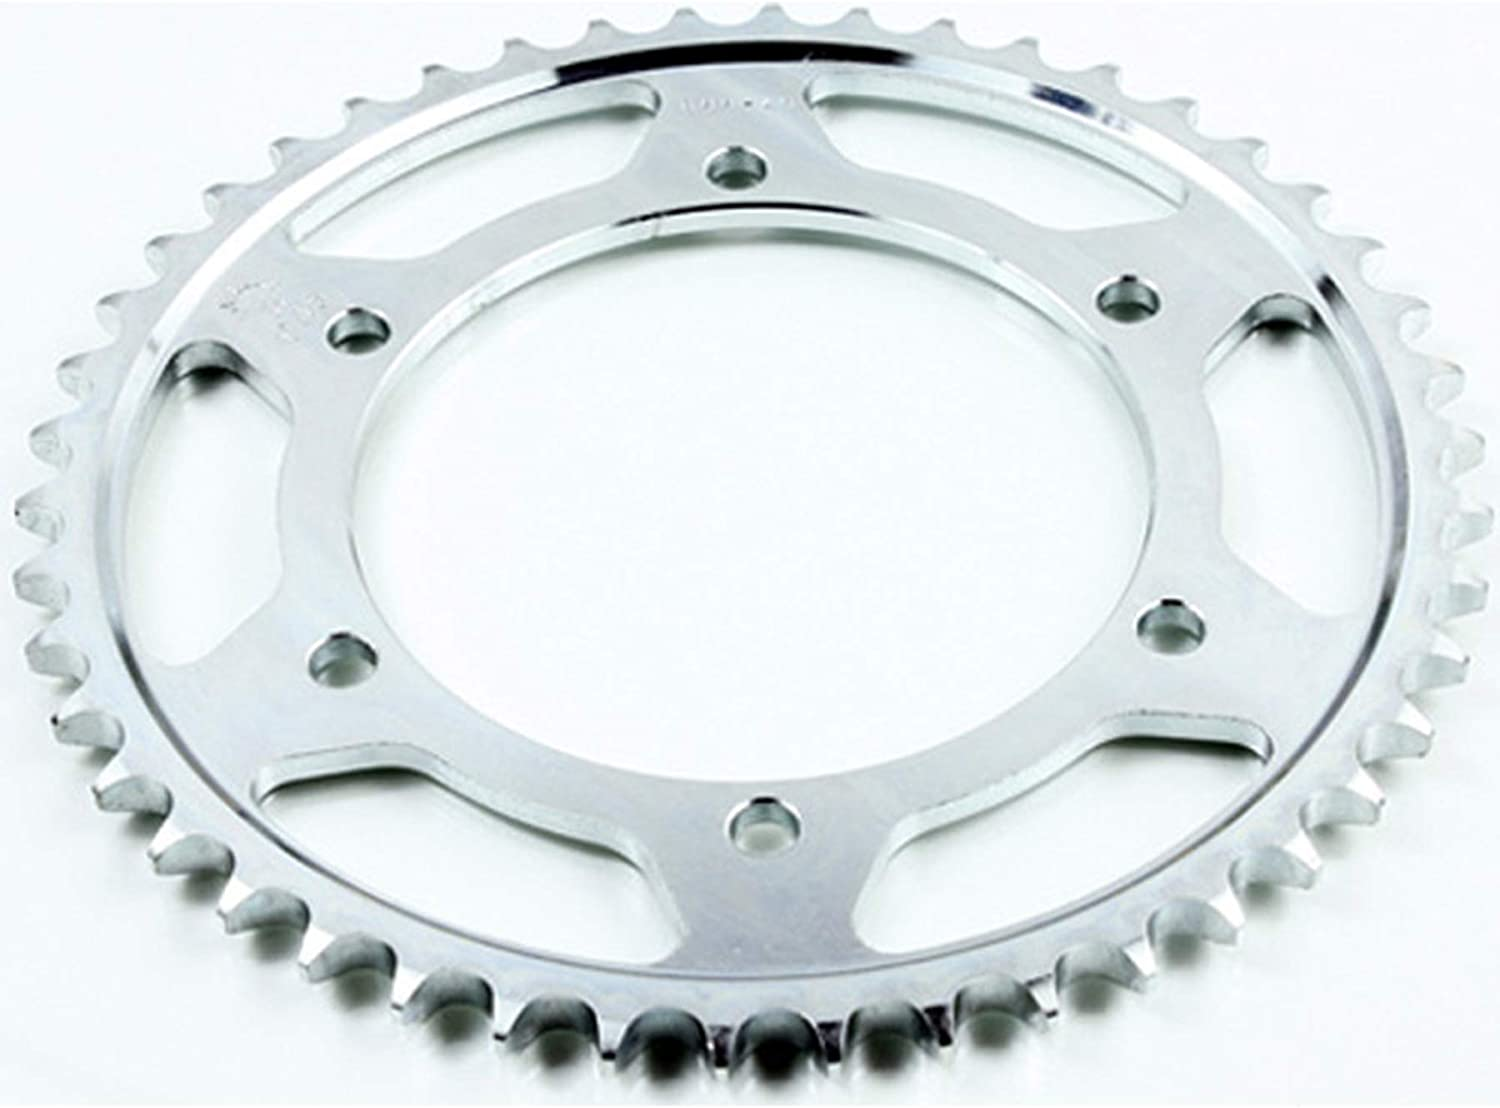 Steel Rear Sprocket Discount mail order 55% OFF - 46T Yamaha 1992 FZR1000 Fits